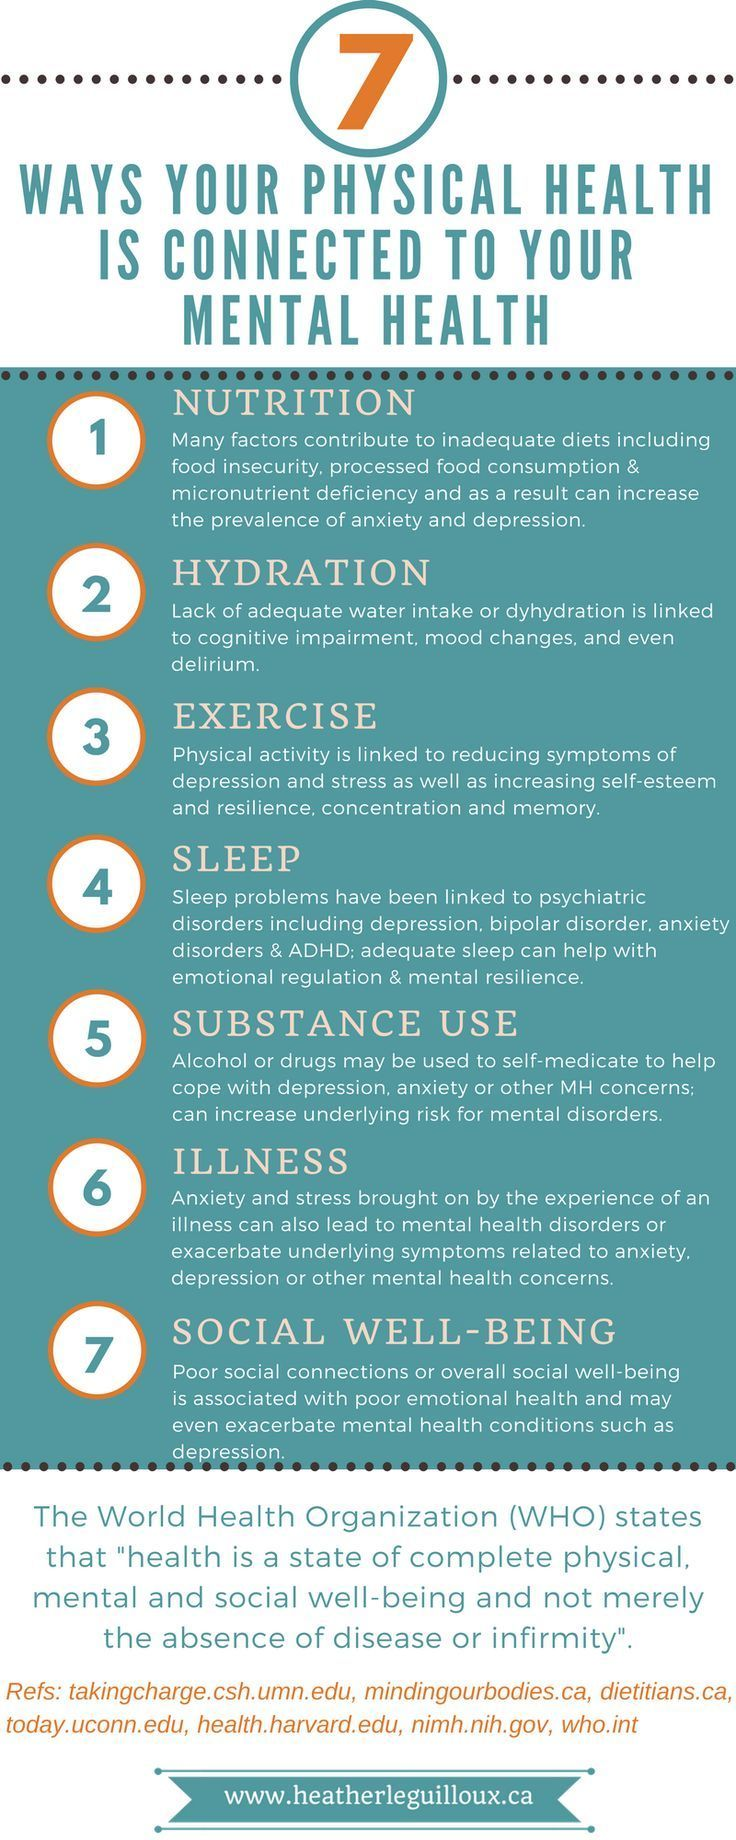 Ways your physical health is connected to your mental health